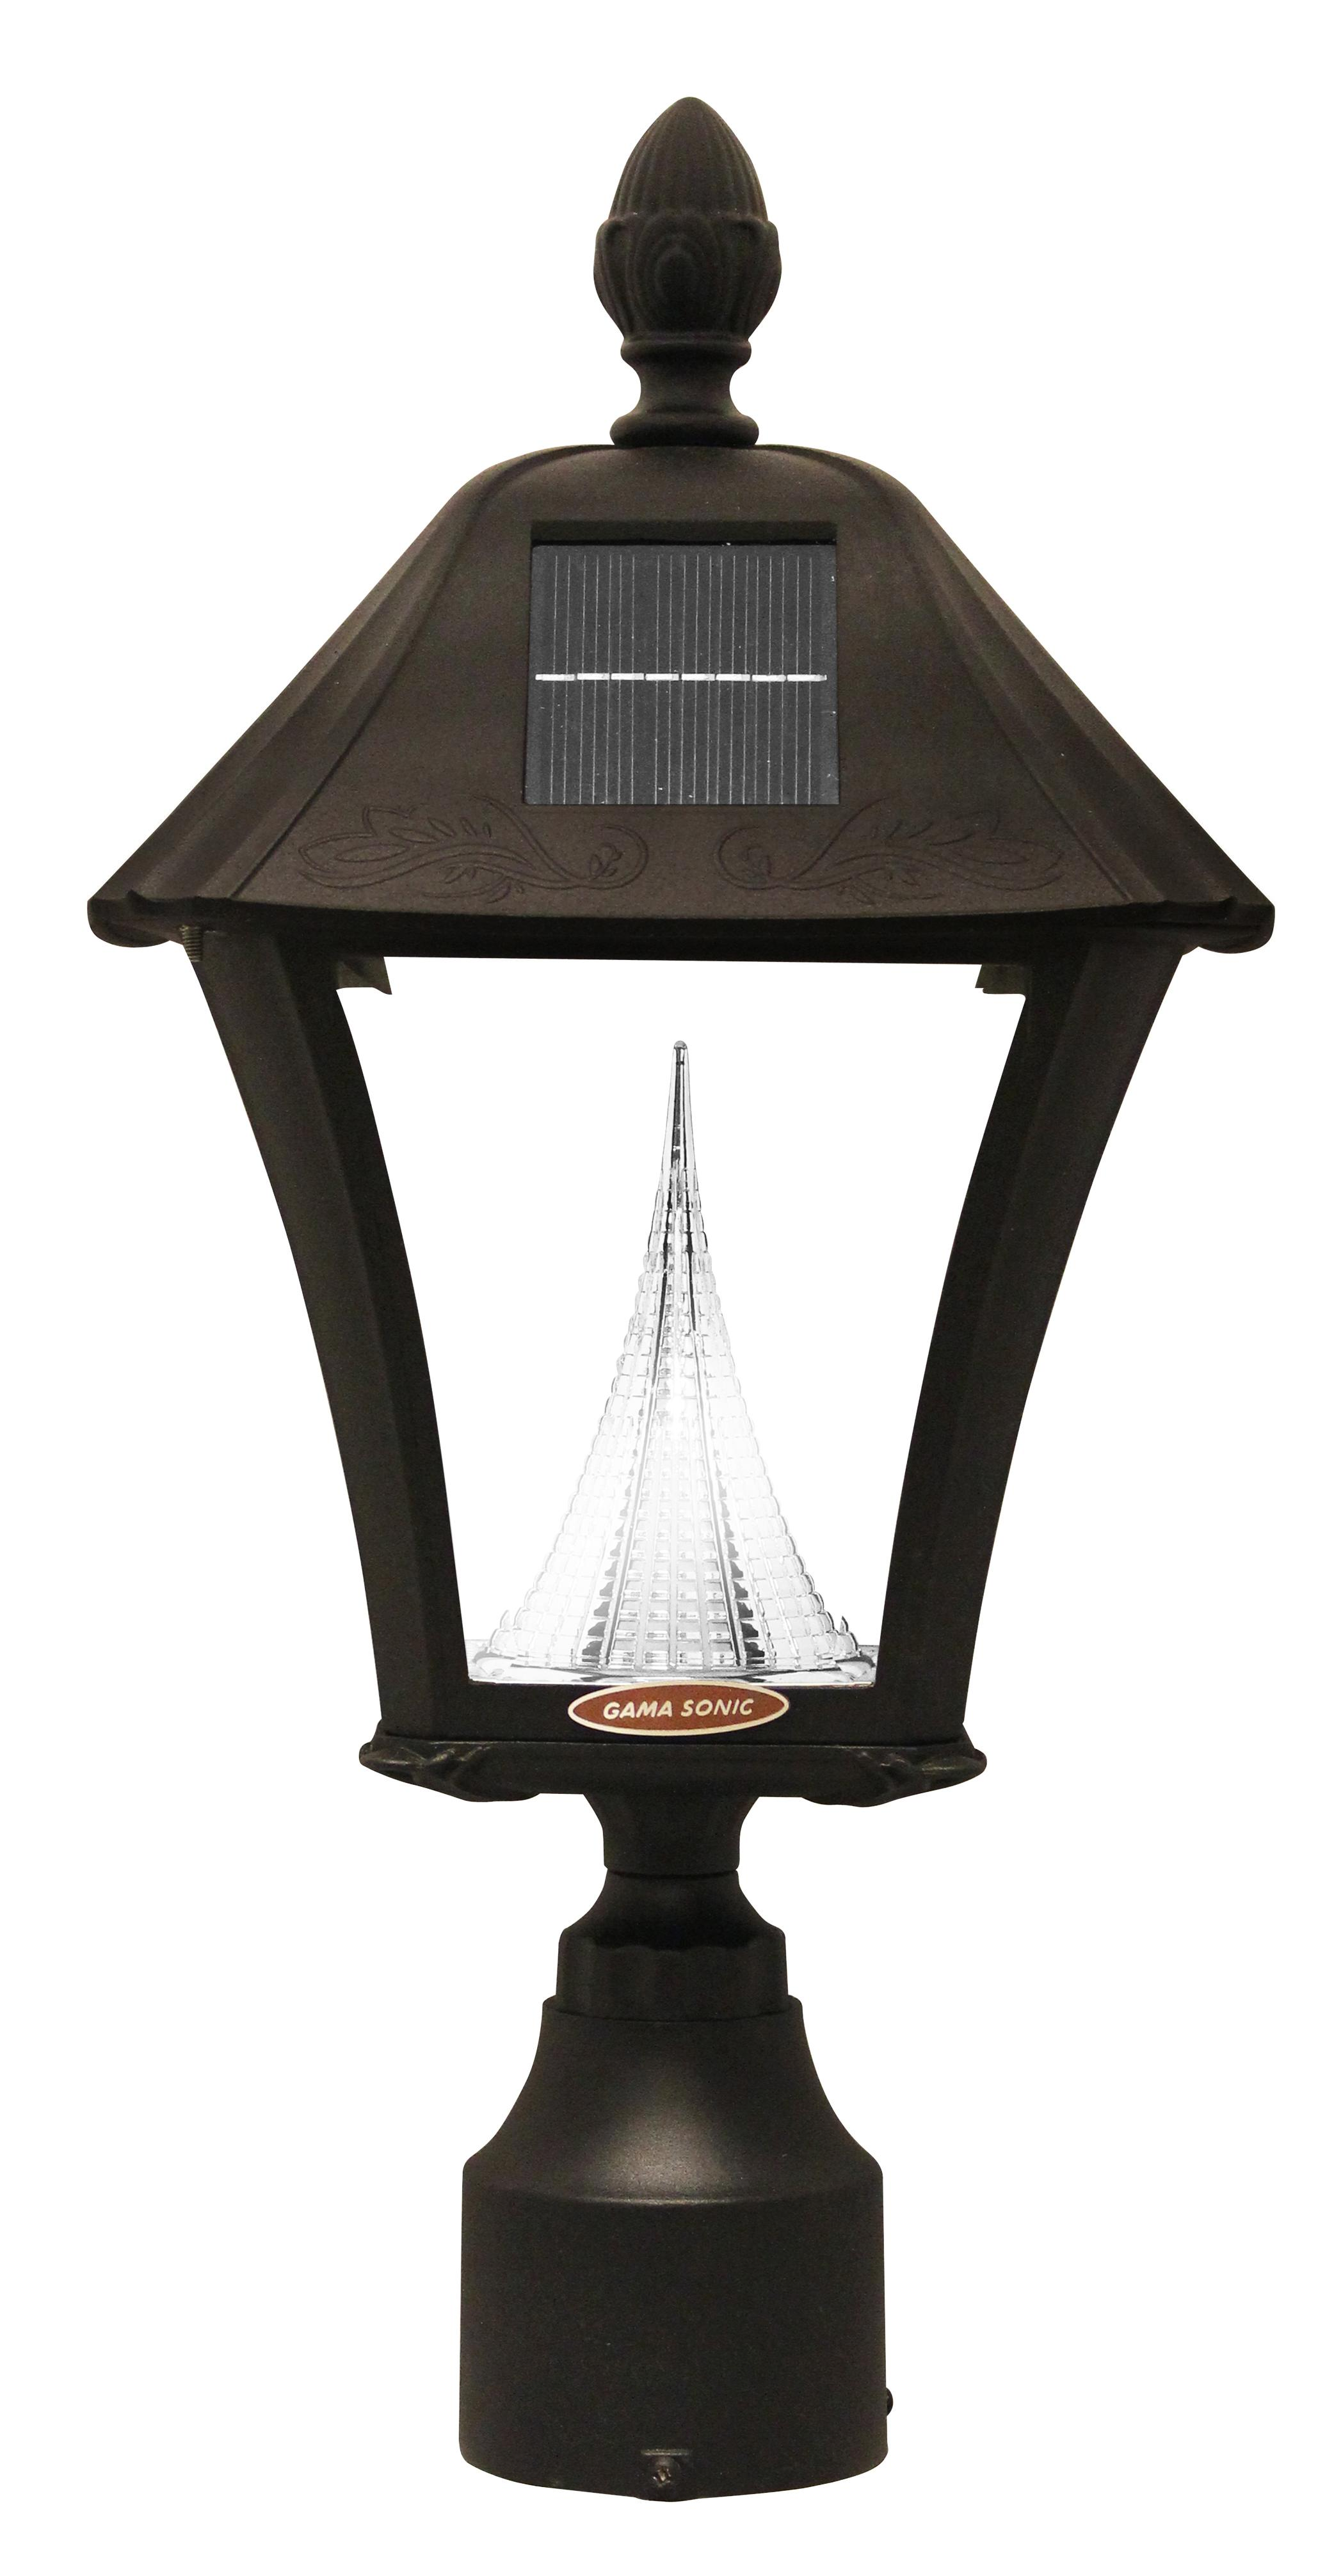 Gama Sonic GS-106FPW Baytown outdoor solar light in black finish on